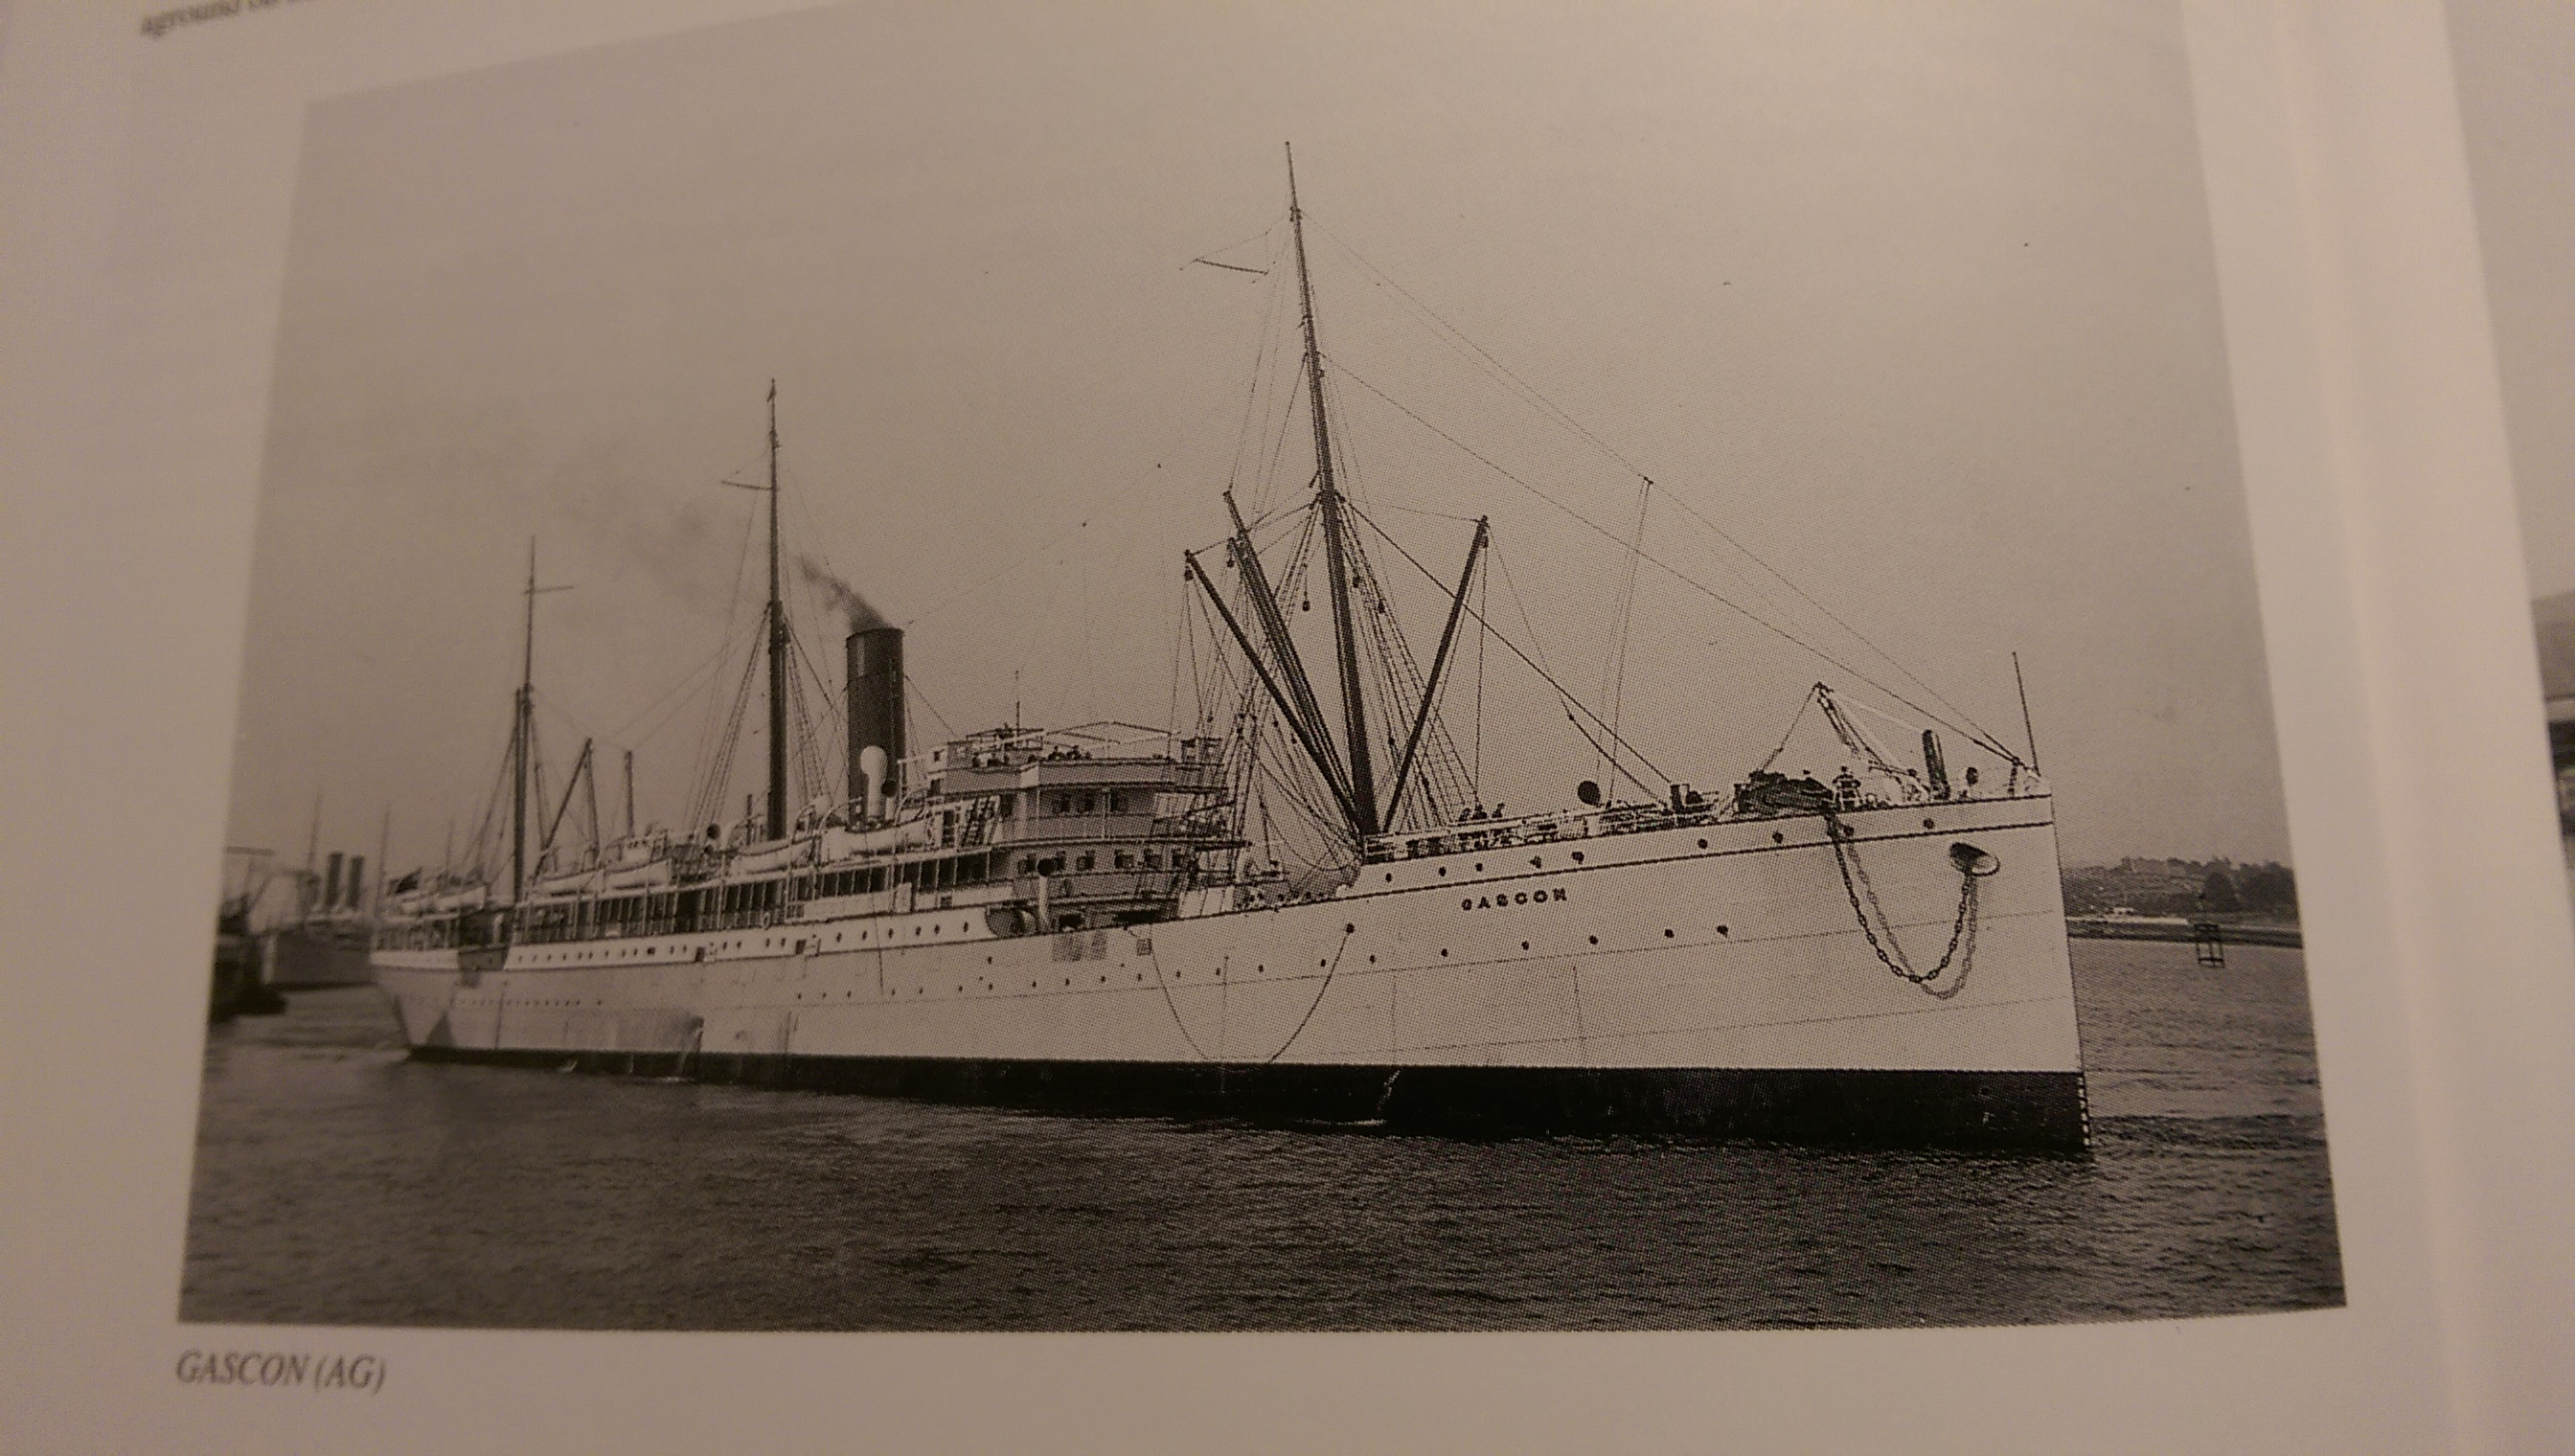 FRONT QUARTER PASSENGER SHIP GASCON BUILT IN BELFAST 1897